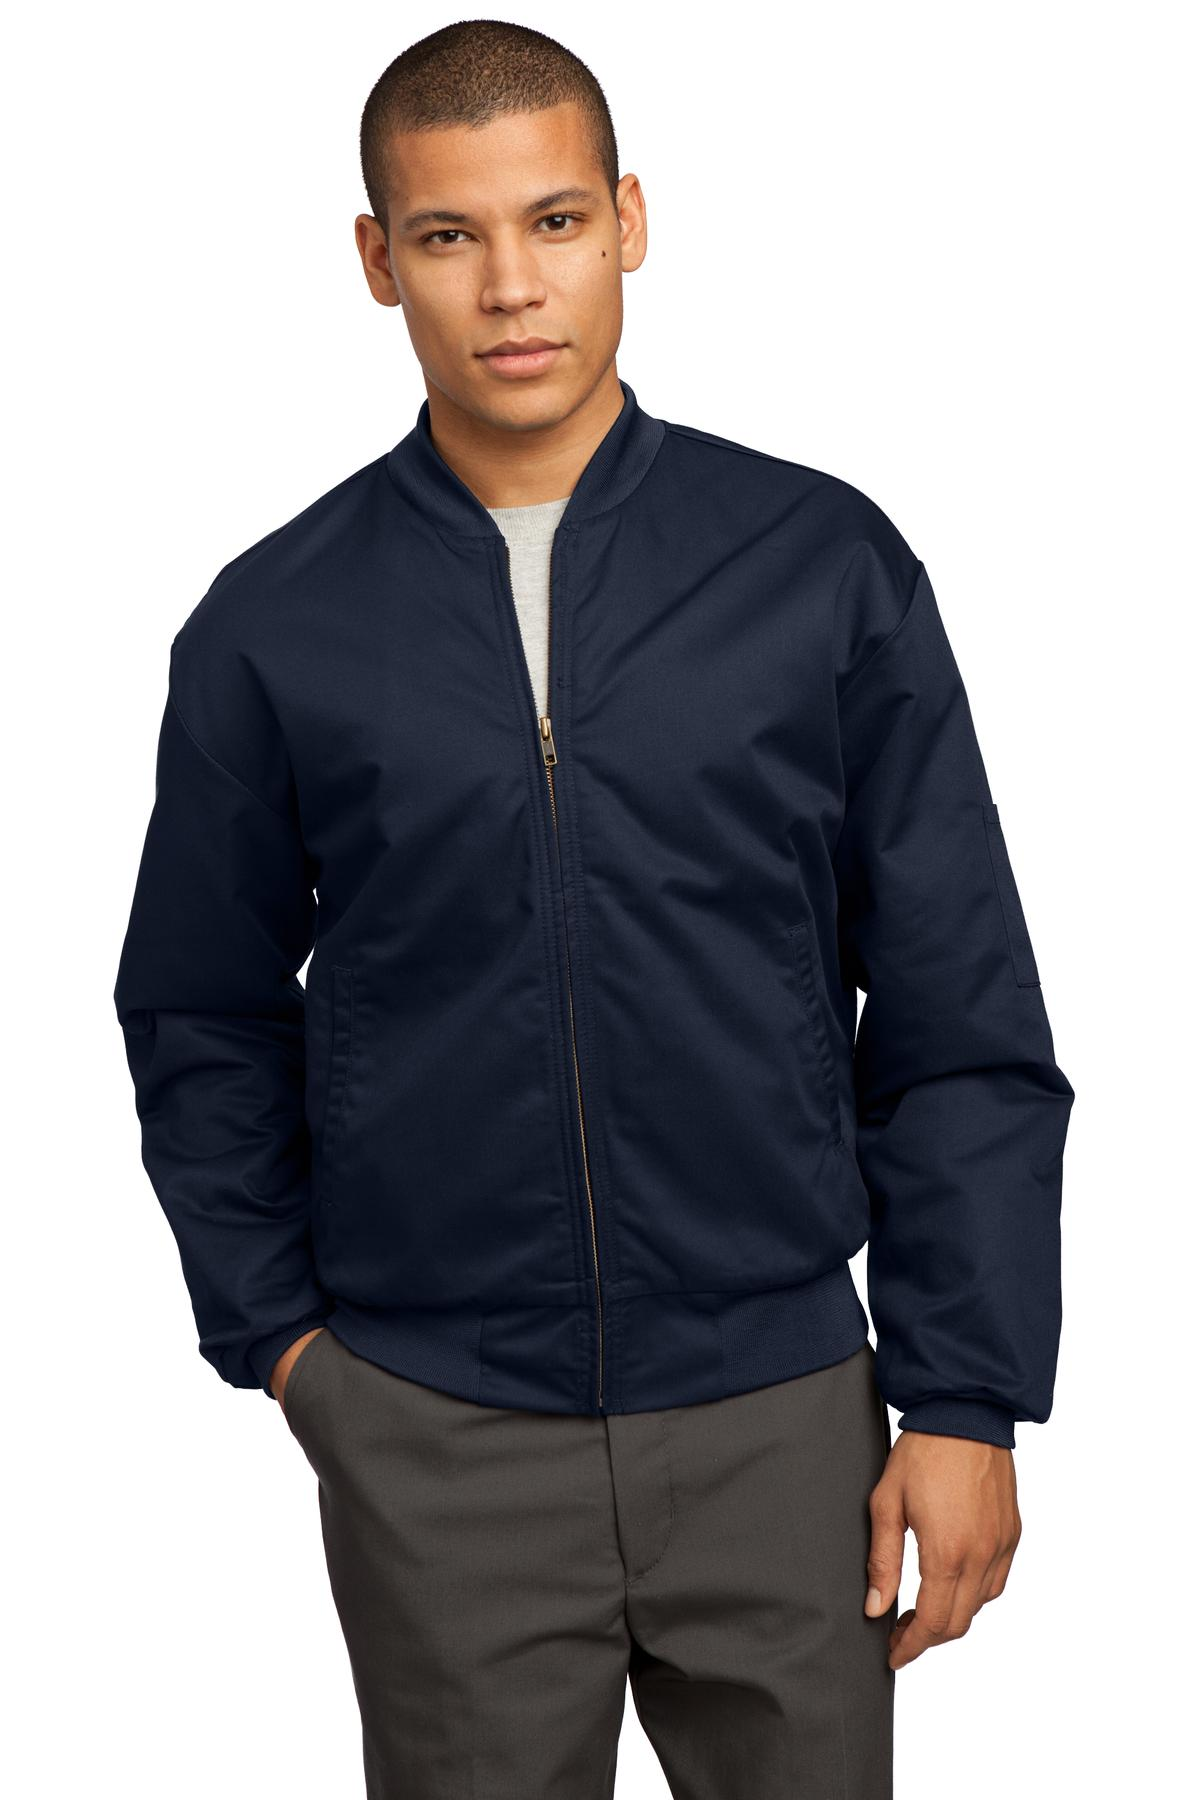 Outerwear-Work-Jackets-5